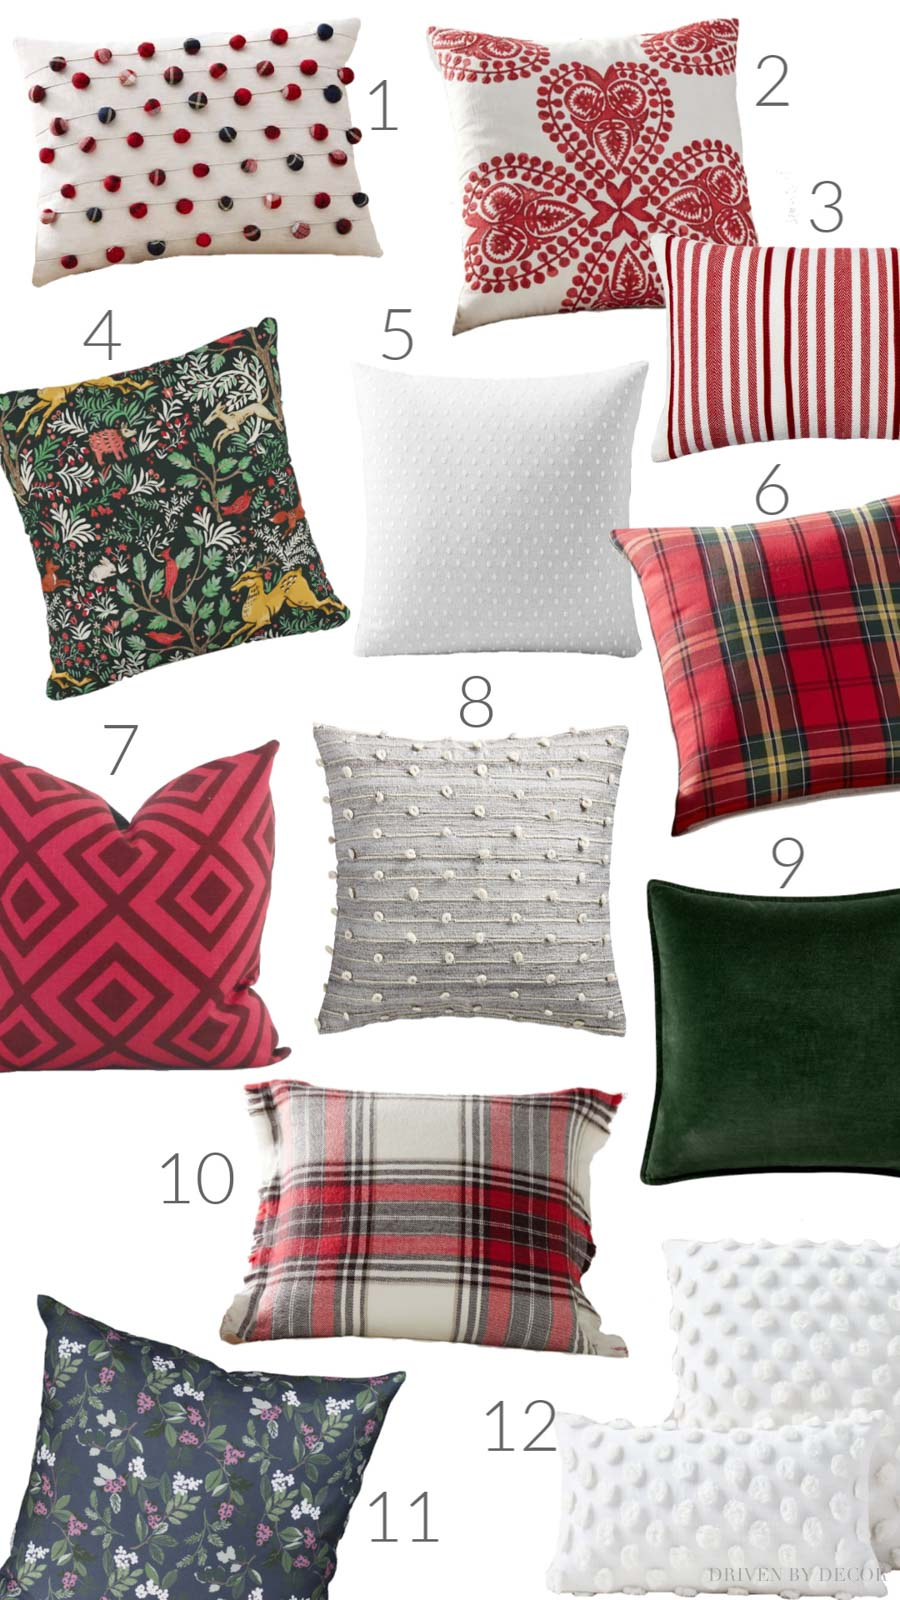 Loving all of these beautiful Christmas pillows!!